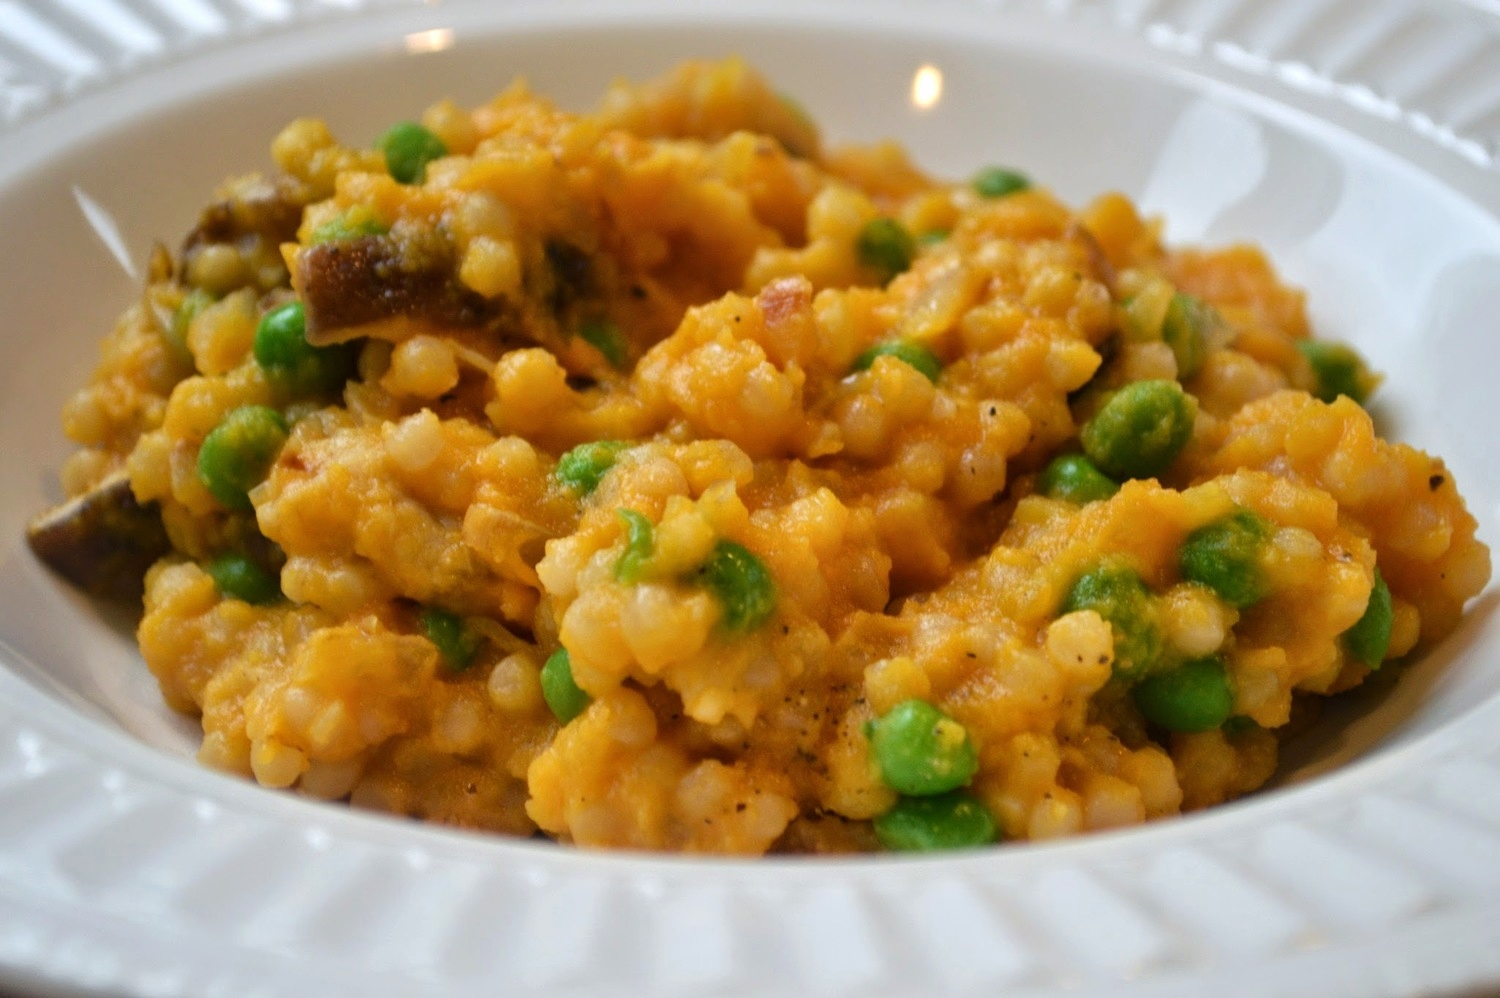 Sara's Israeli Couscous with Mushrooms, Peas and Sweet Potato Sauce